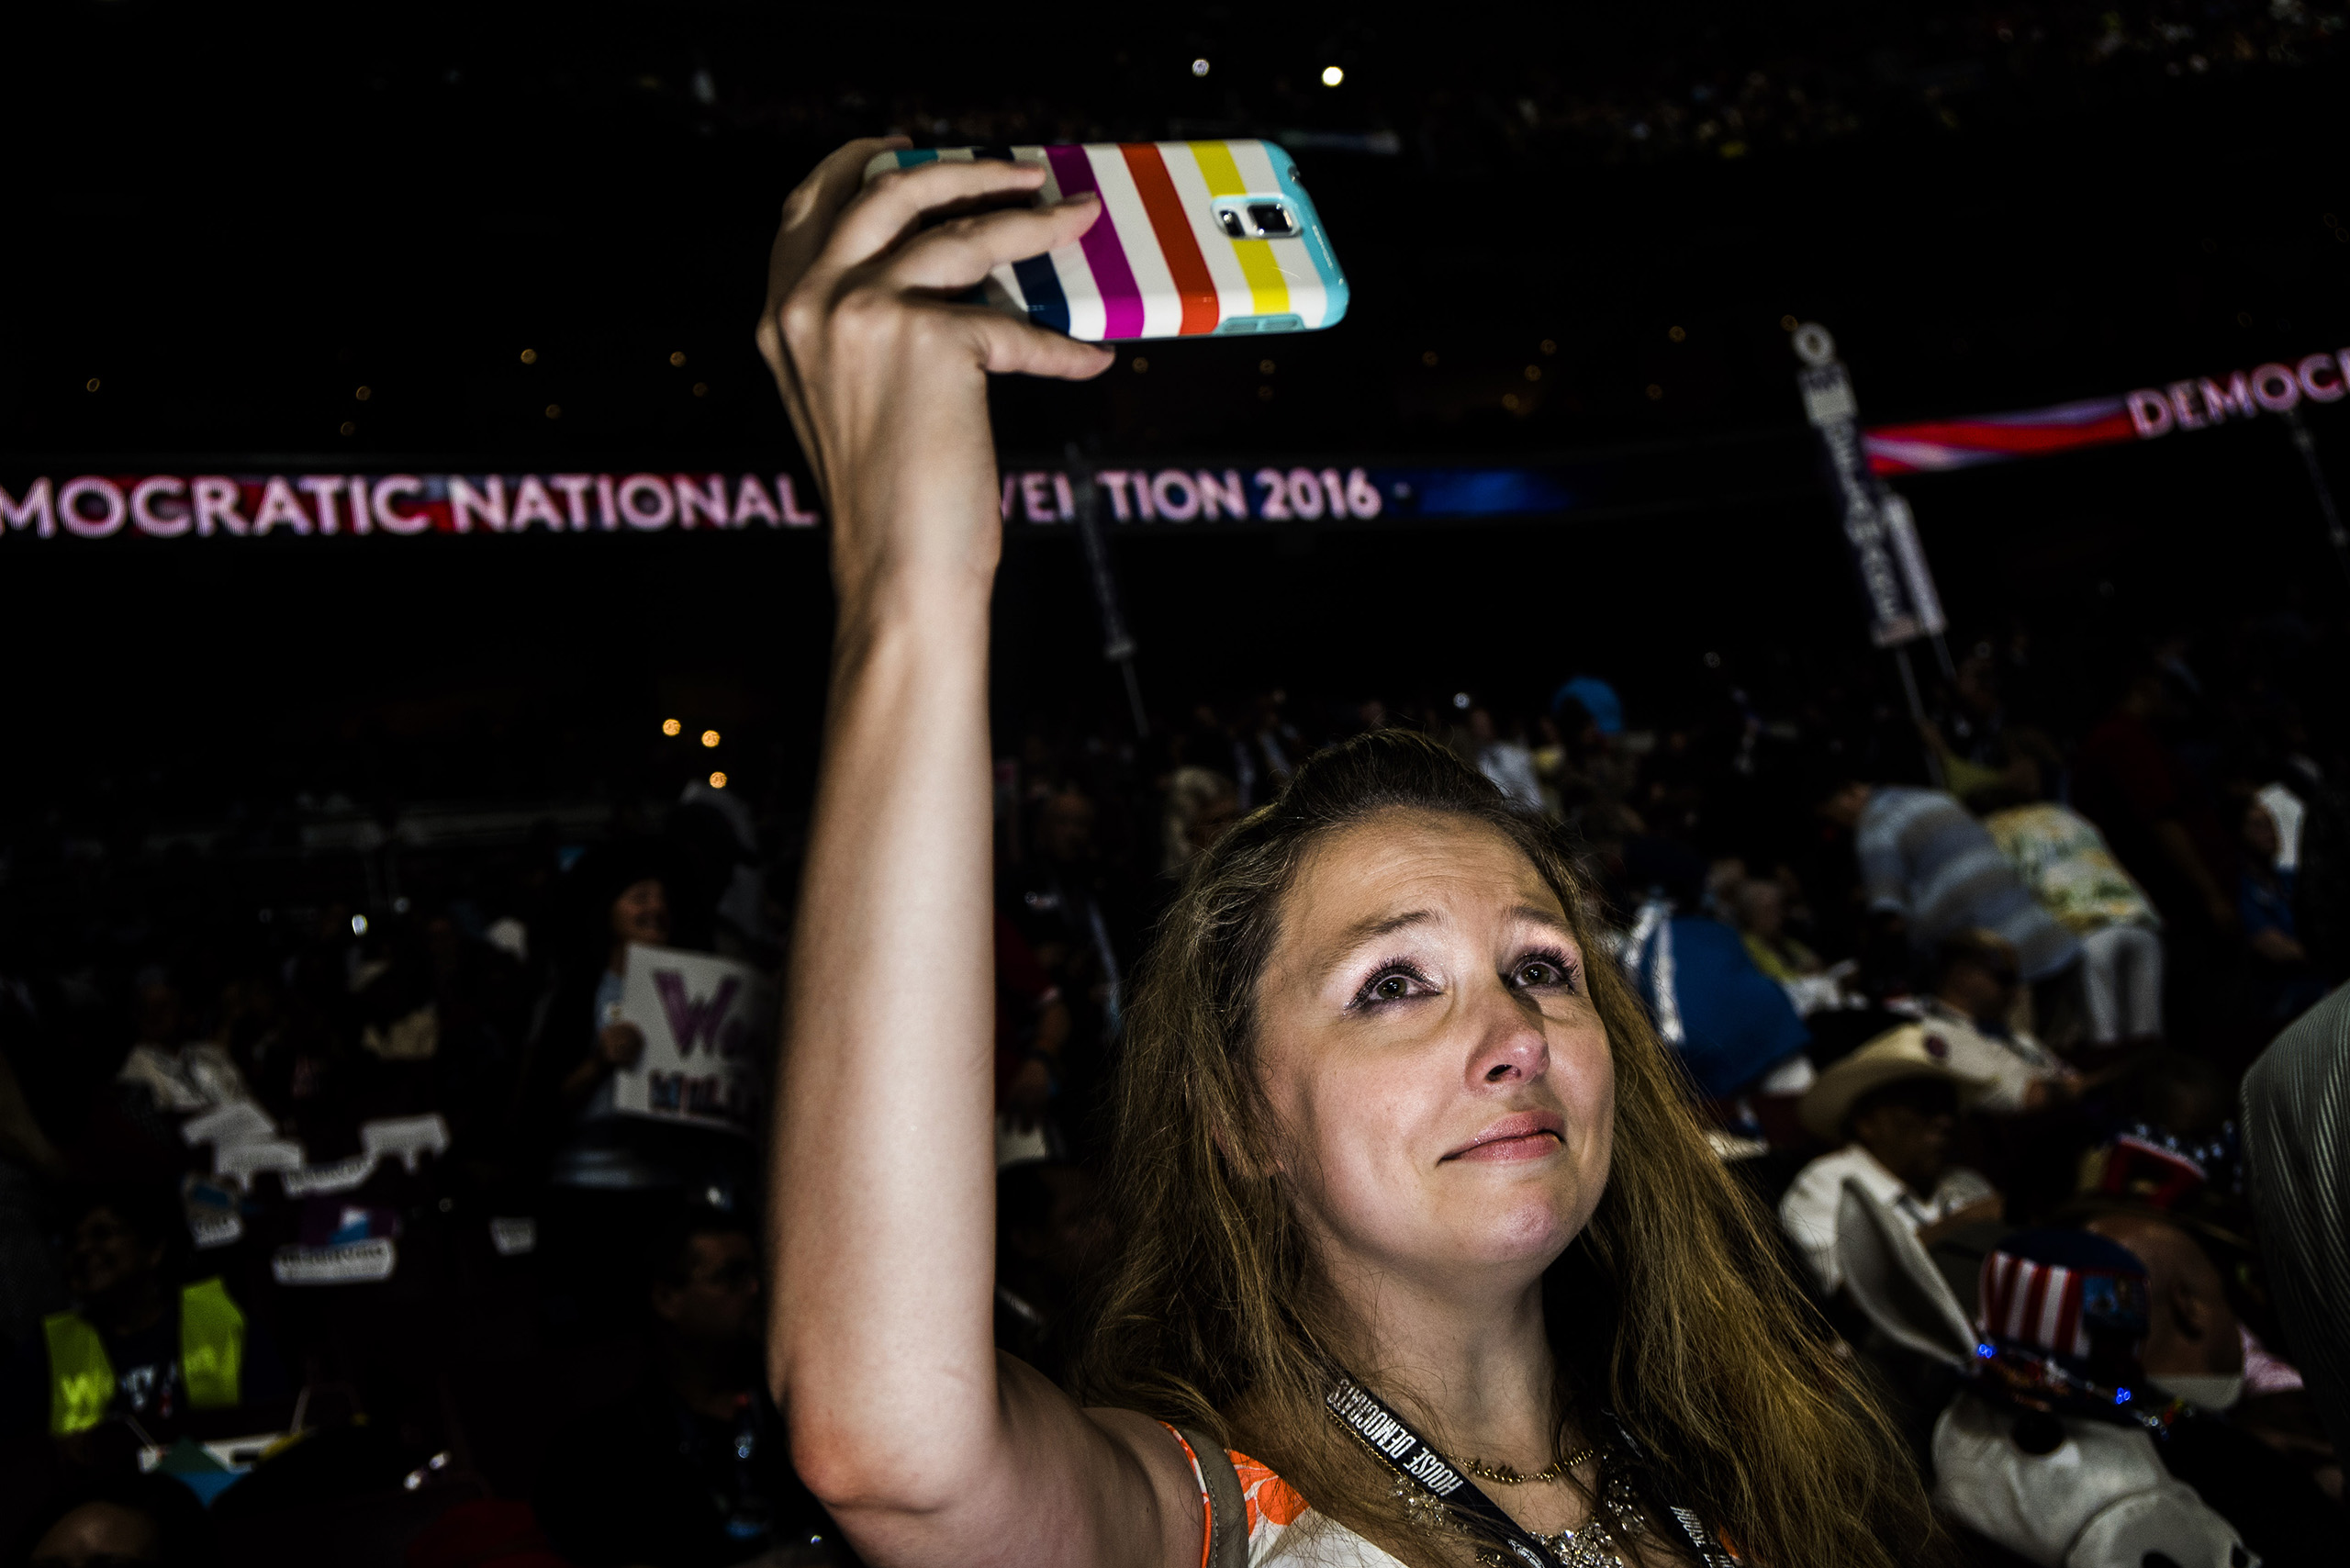 An emotional moment on  the second day of the Democratic National Convention at the Wells Fargo Center, July 26, 2016 in Philadelphia, Pennsylvania.